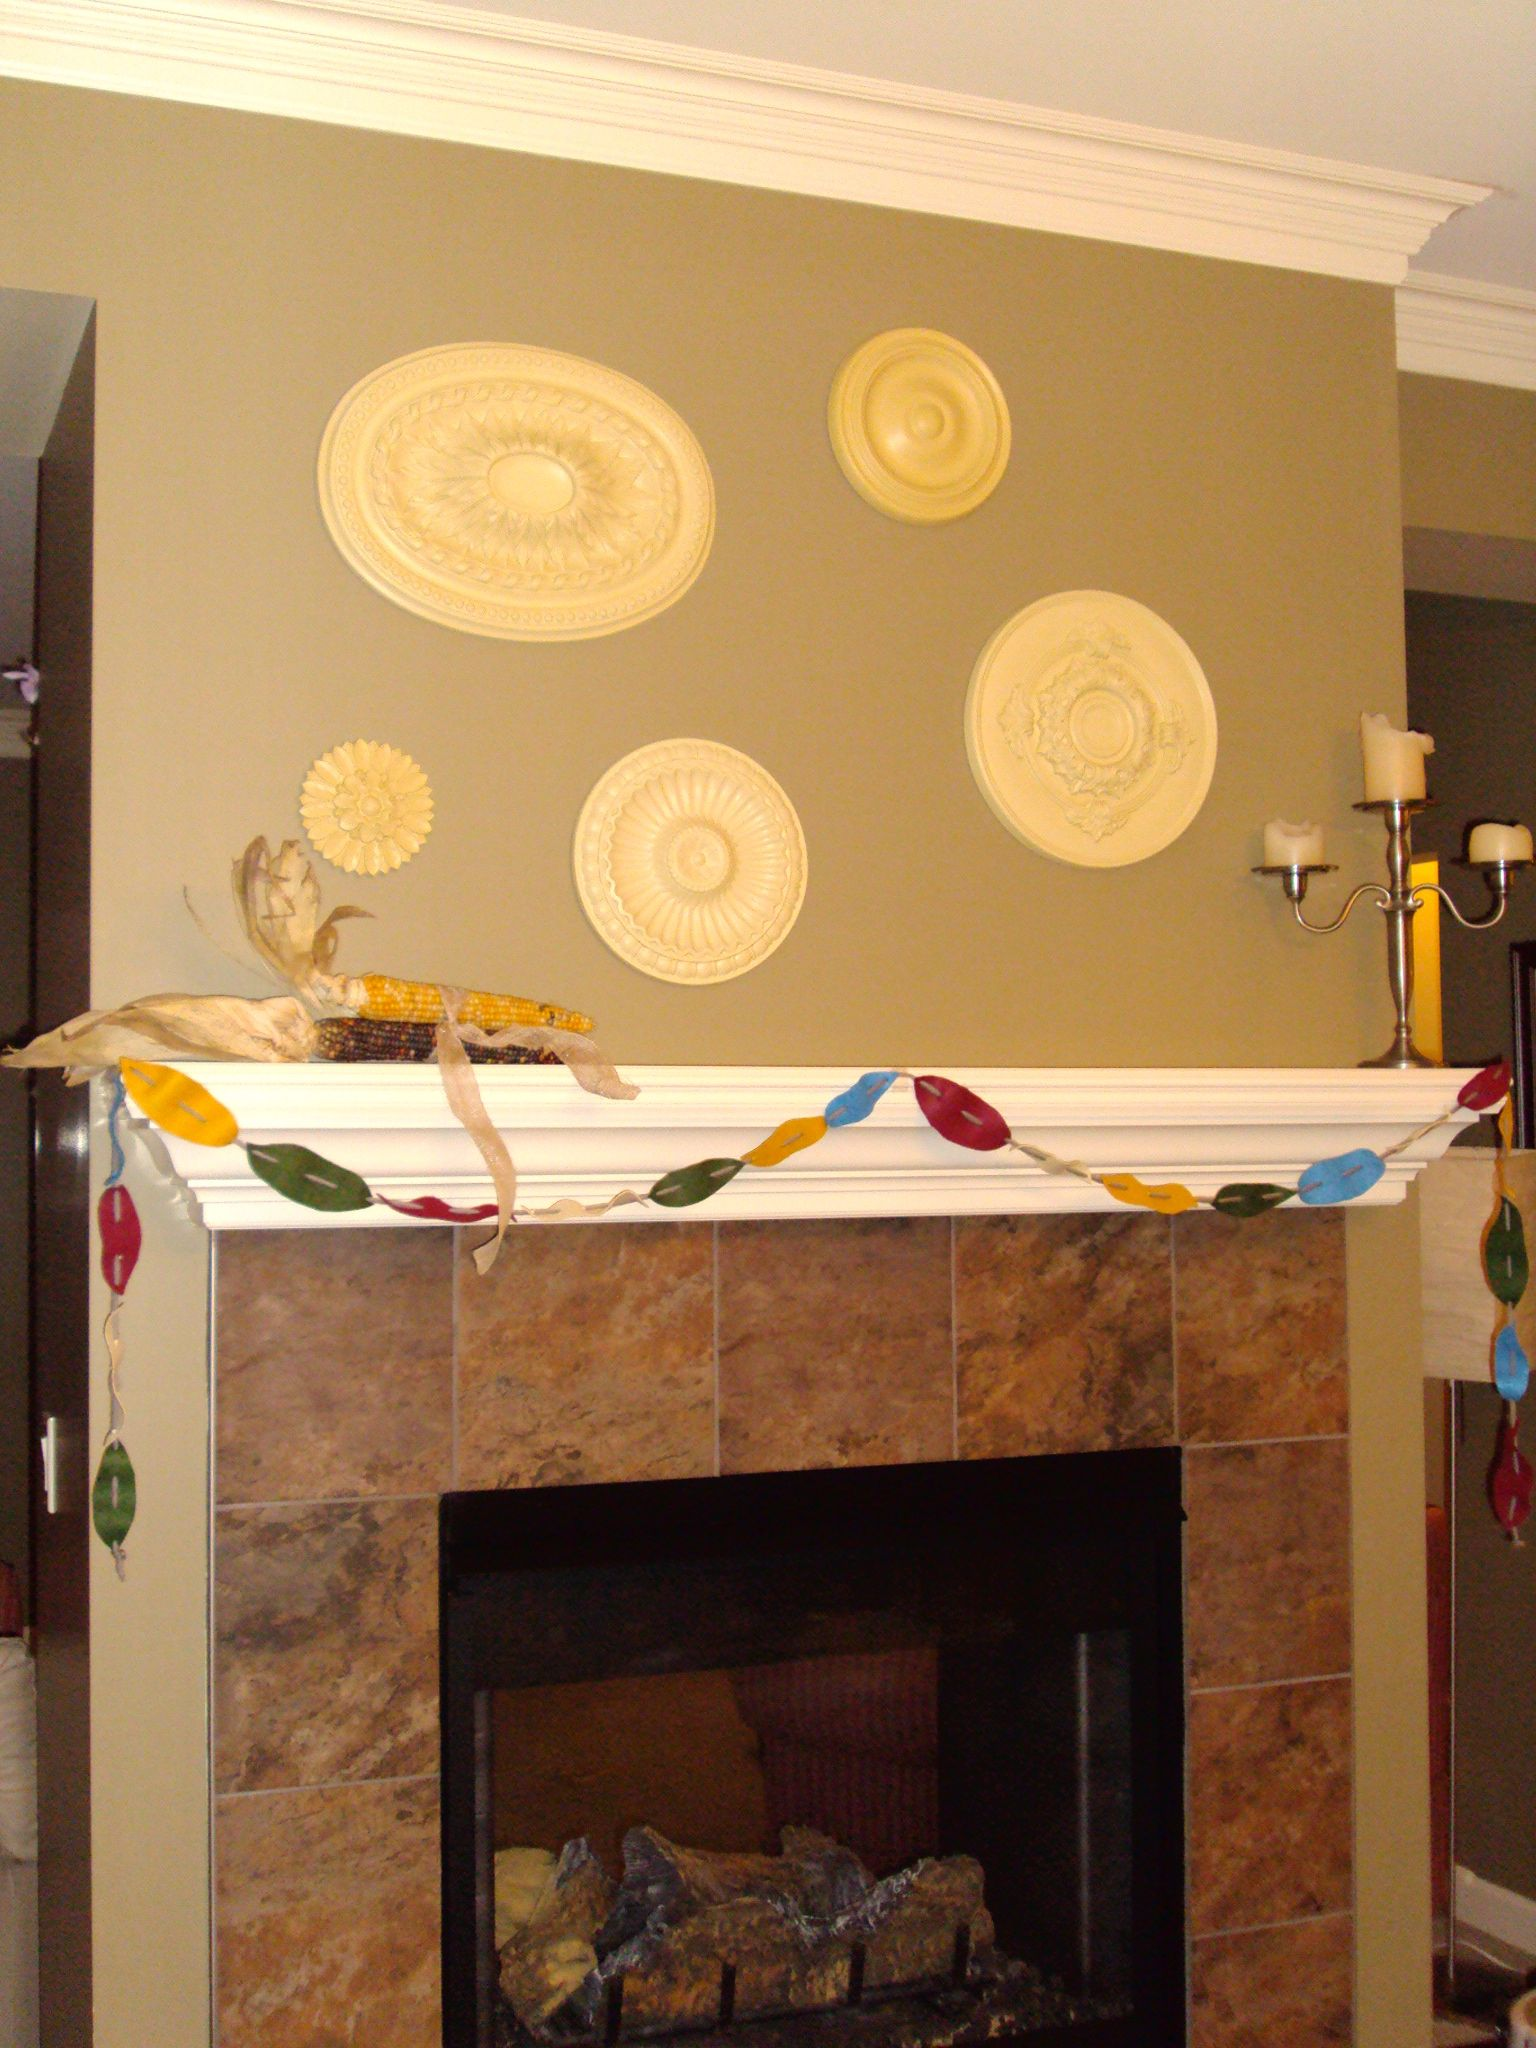 Ceiling medallions; Felted Leaf Garland | My Completed Pinterest ...